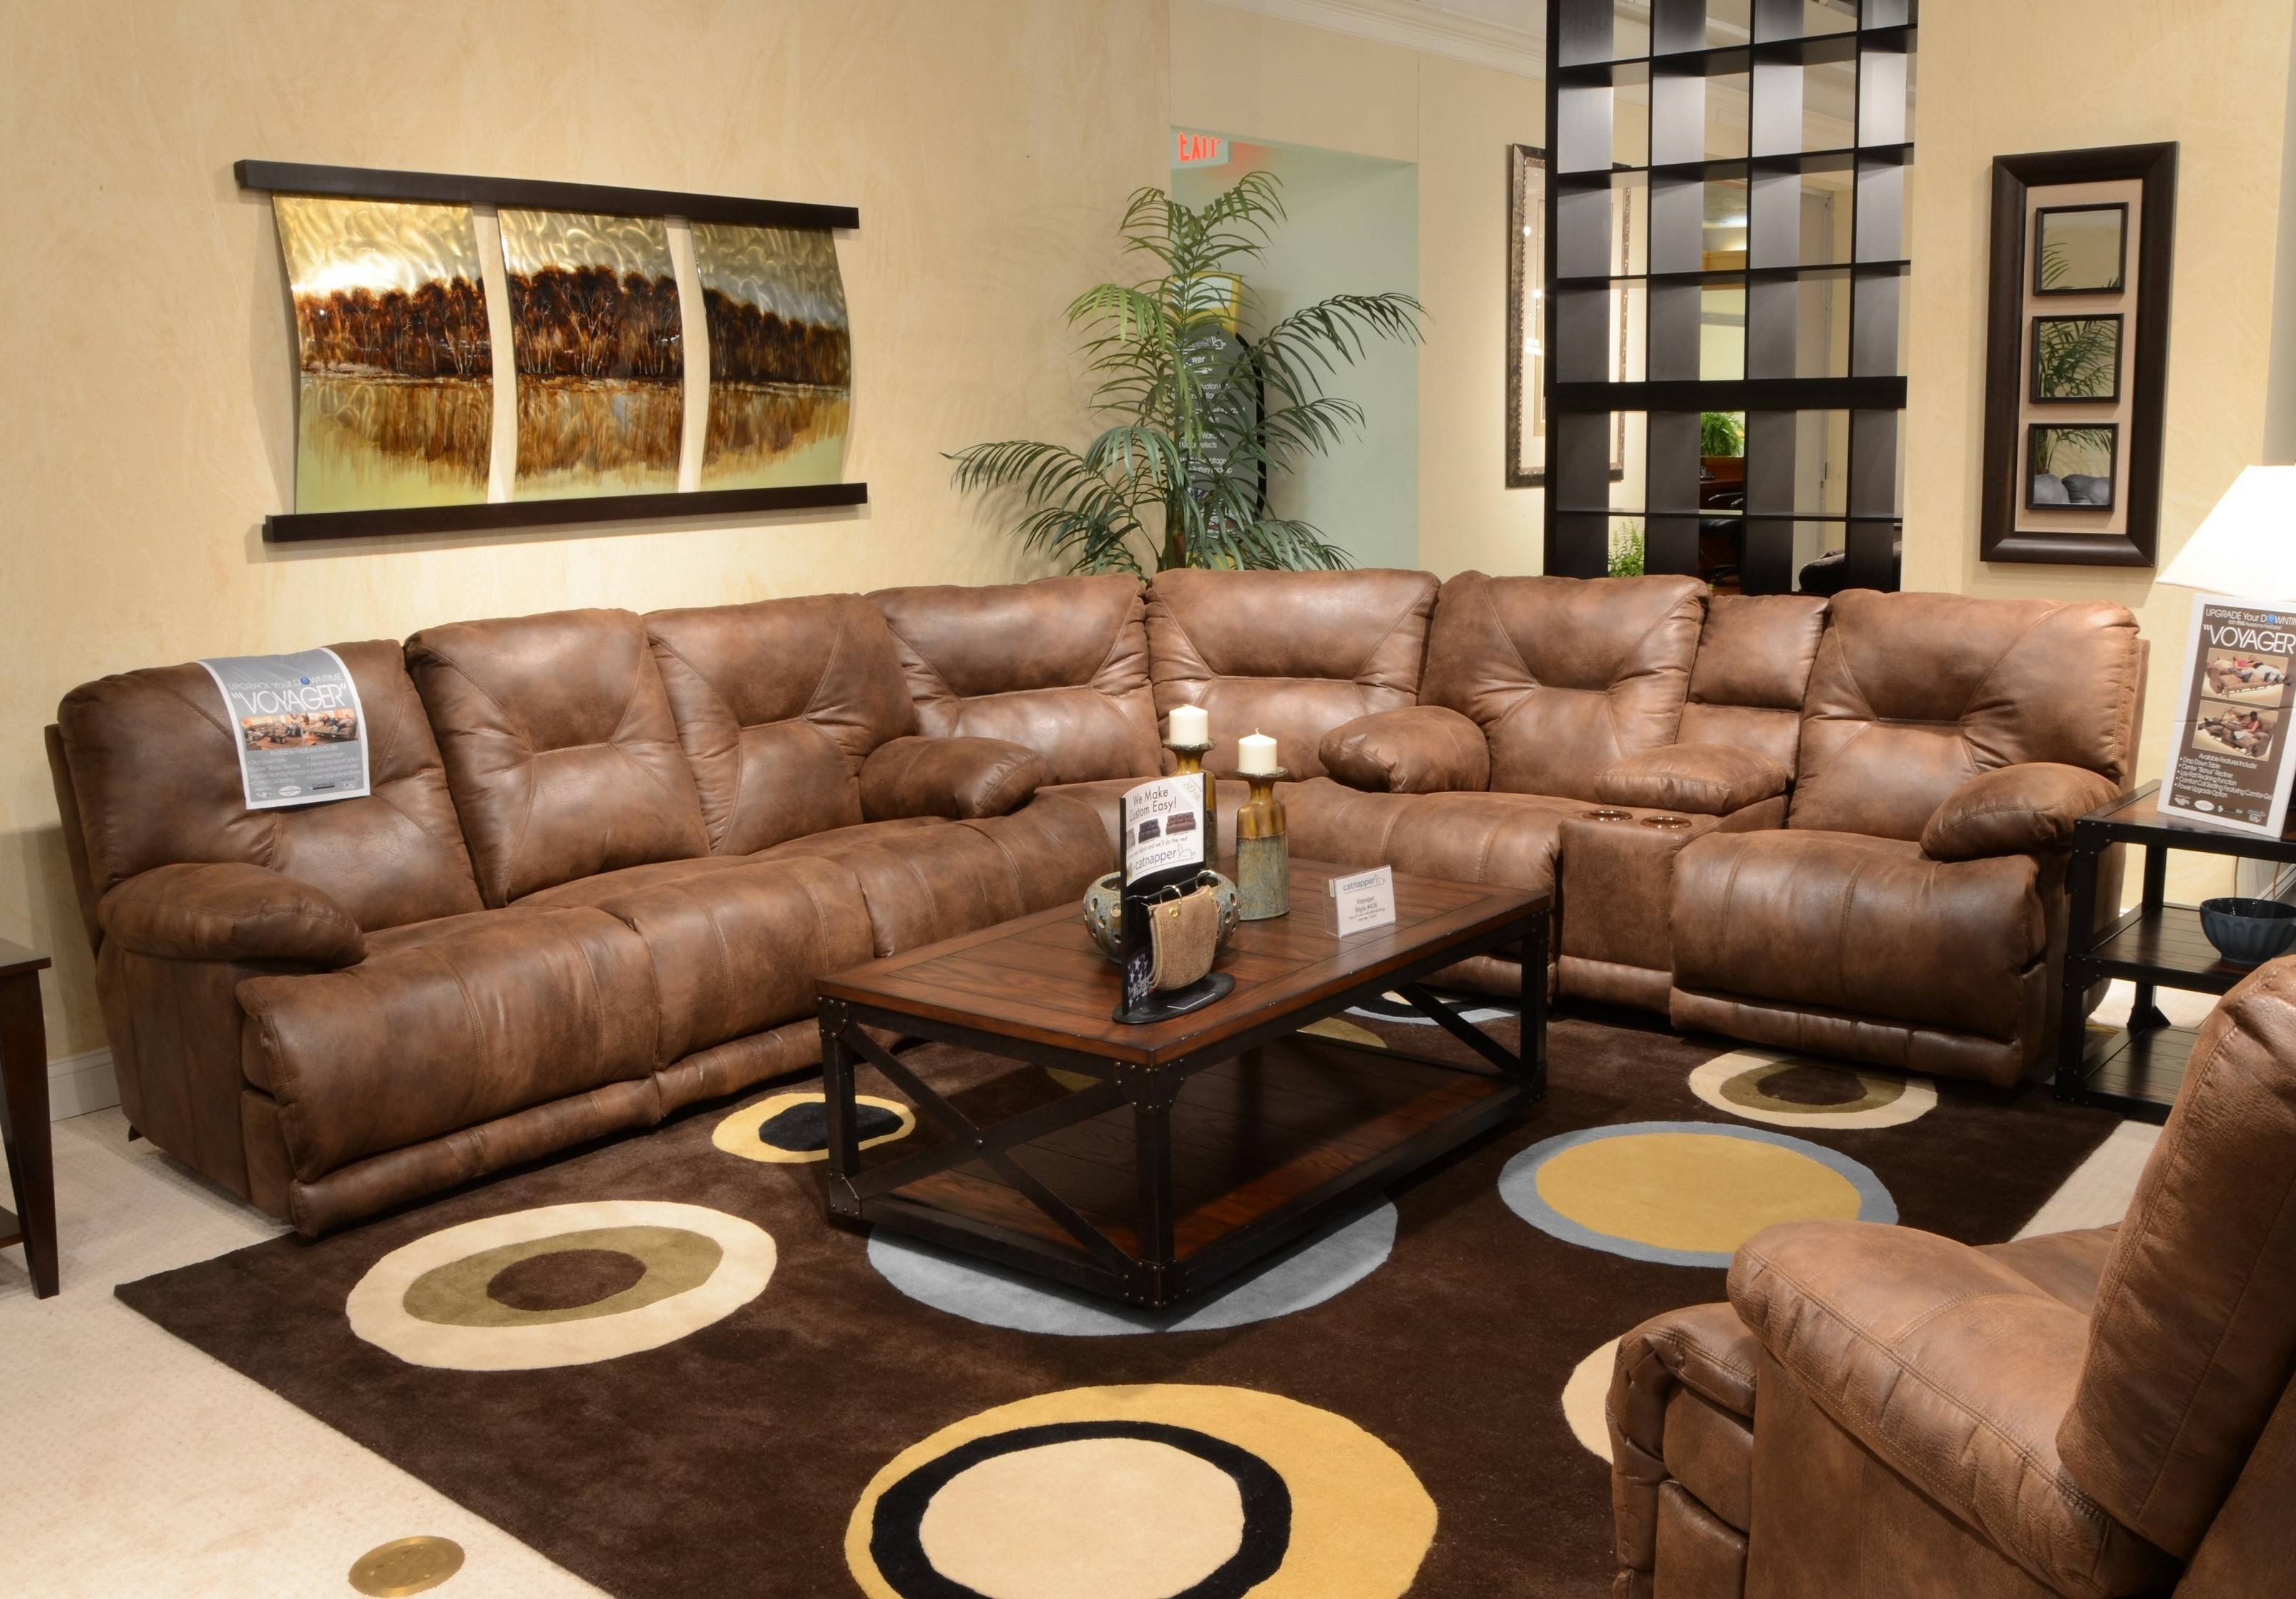 30 Inspirations of Decorating With a Sectional Sofa